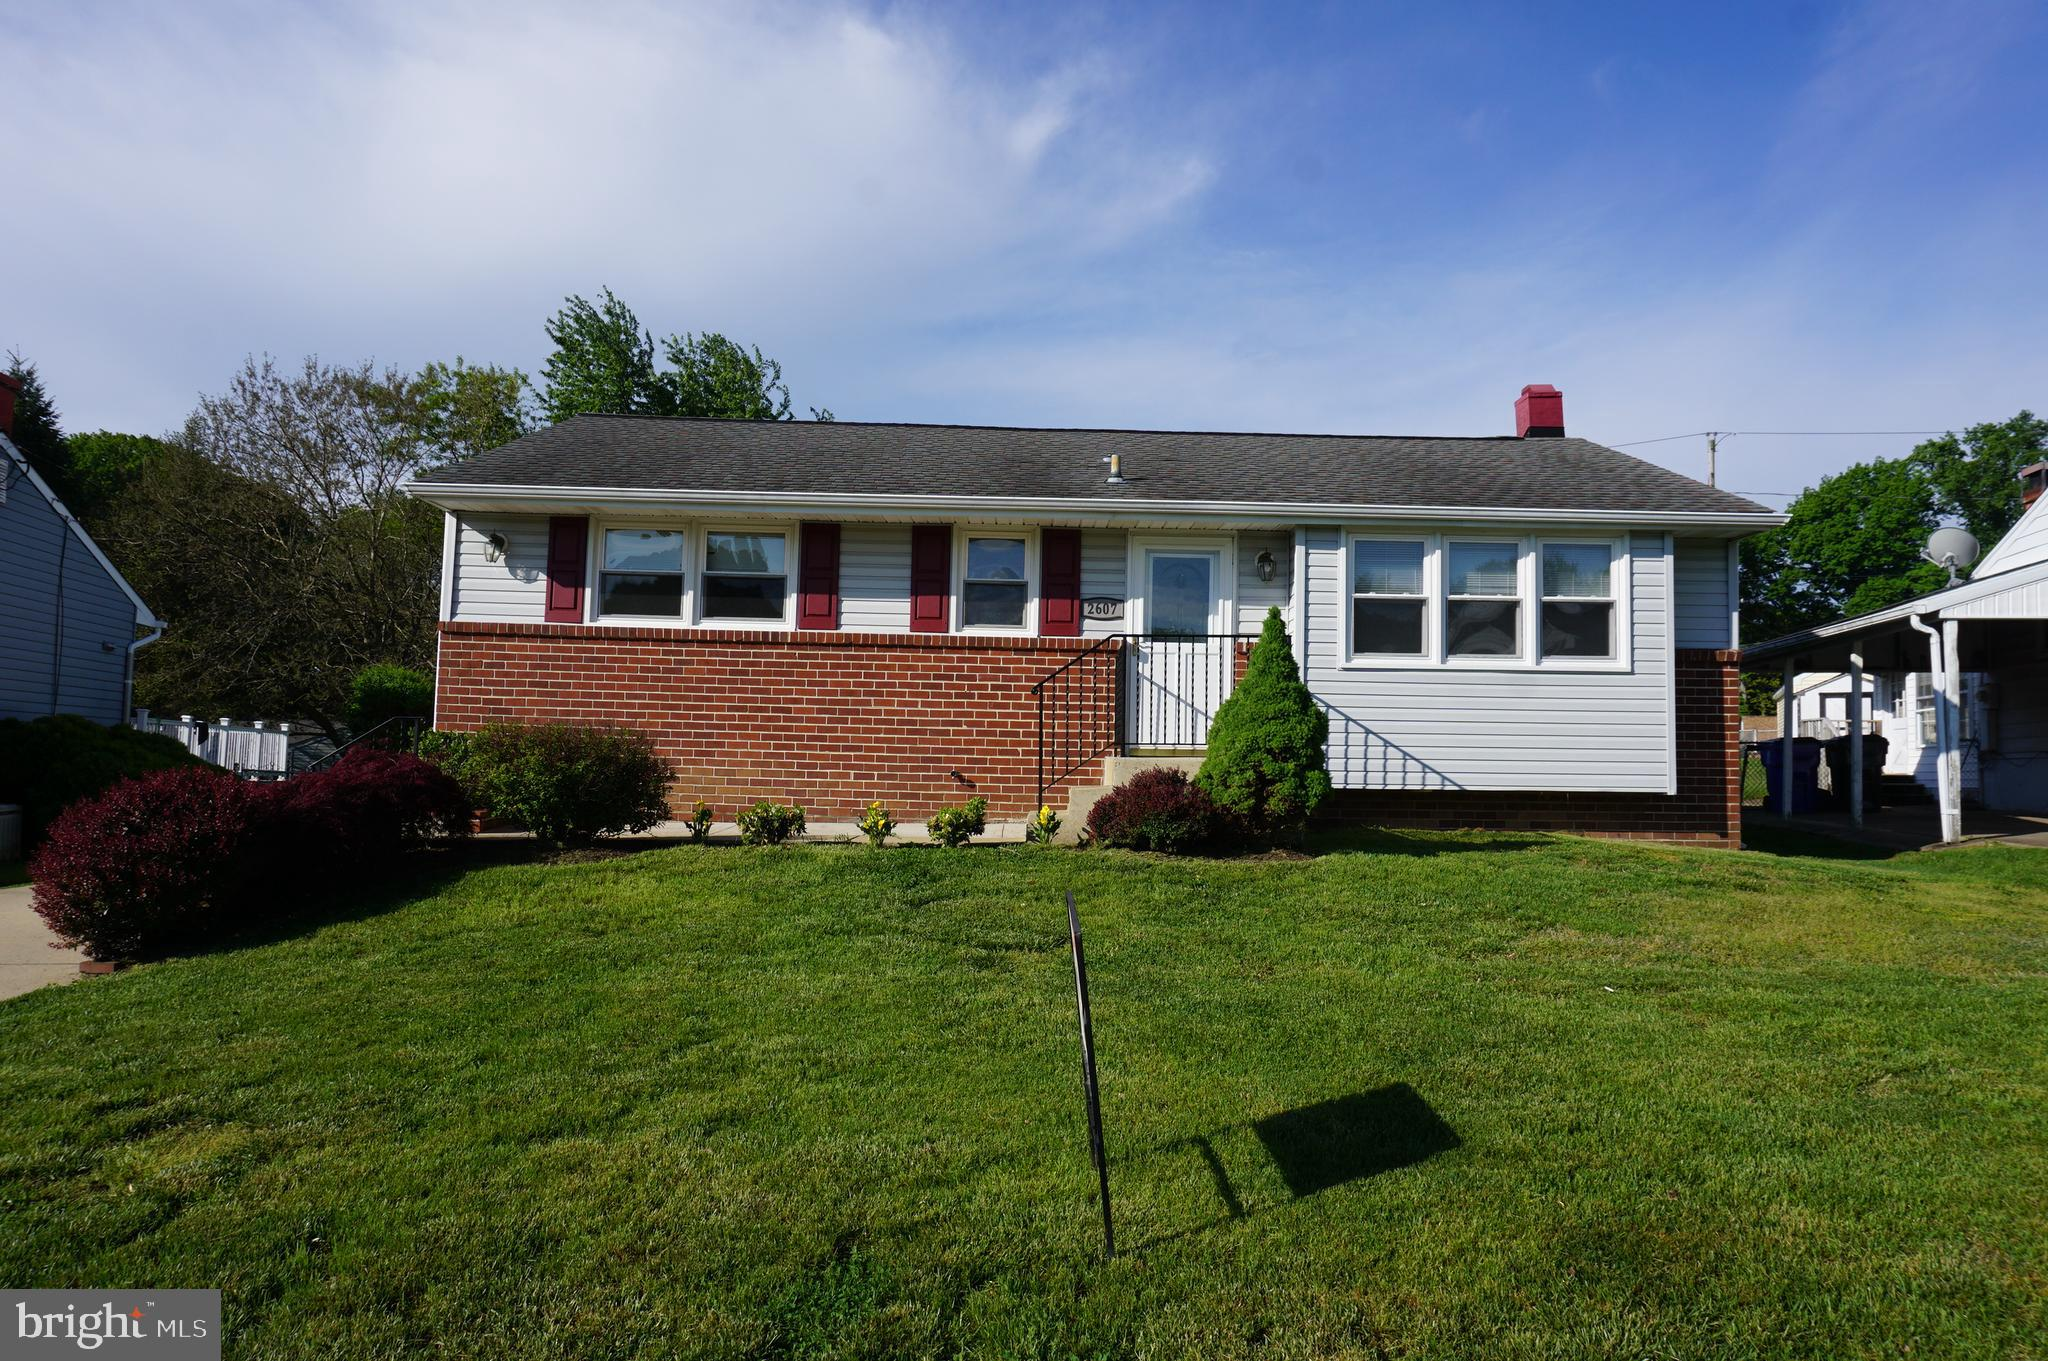 Nice home being sold by the original family. Recently cosmetically updated, the home features fresh